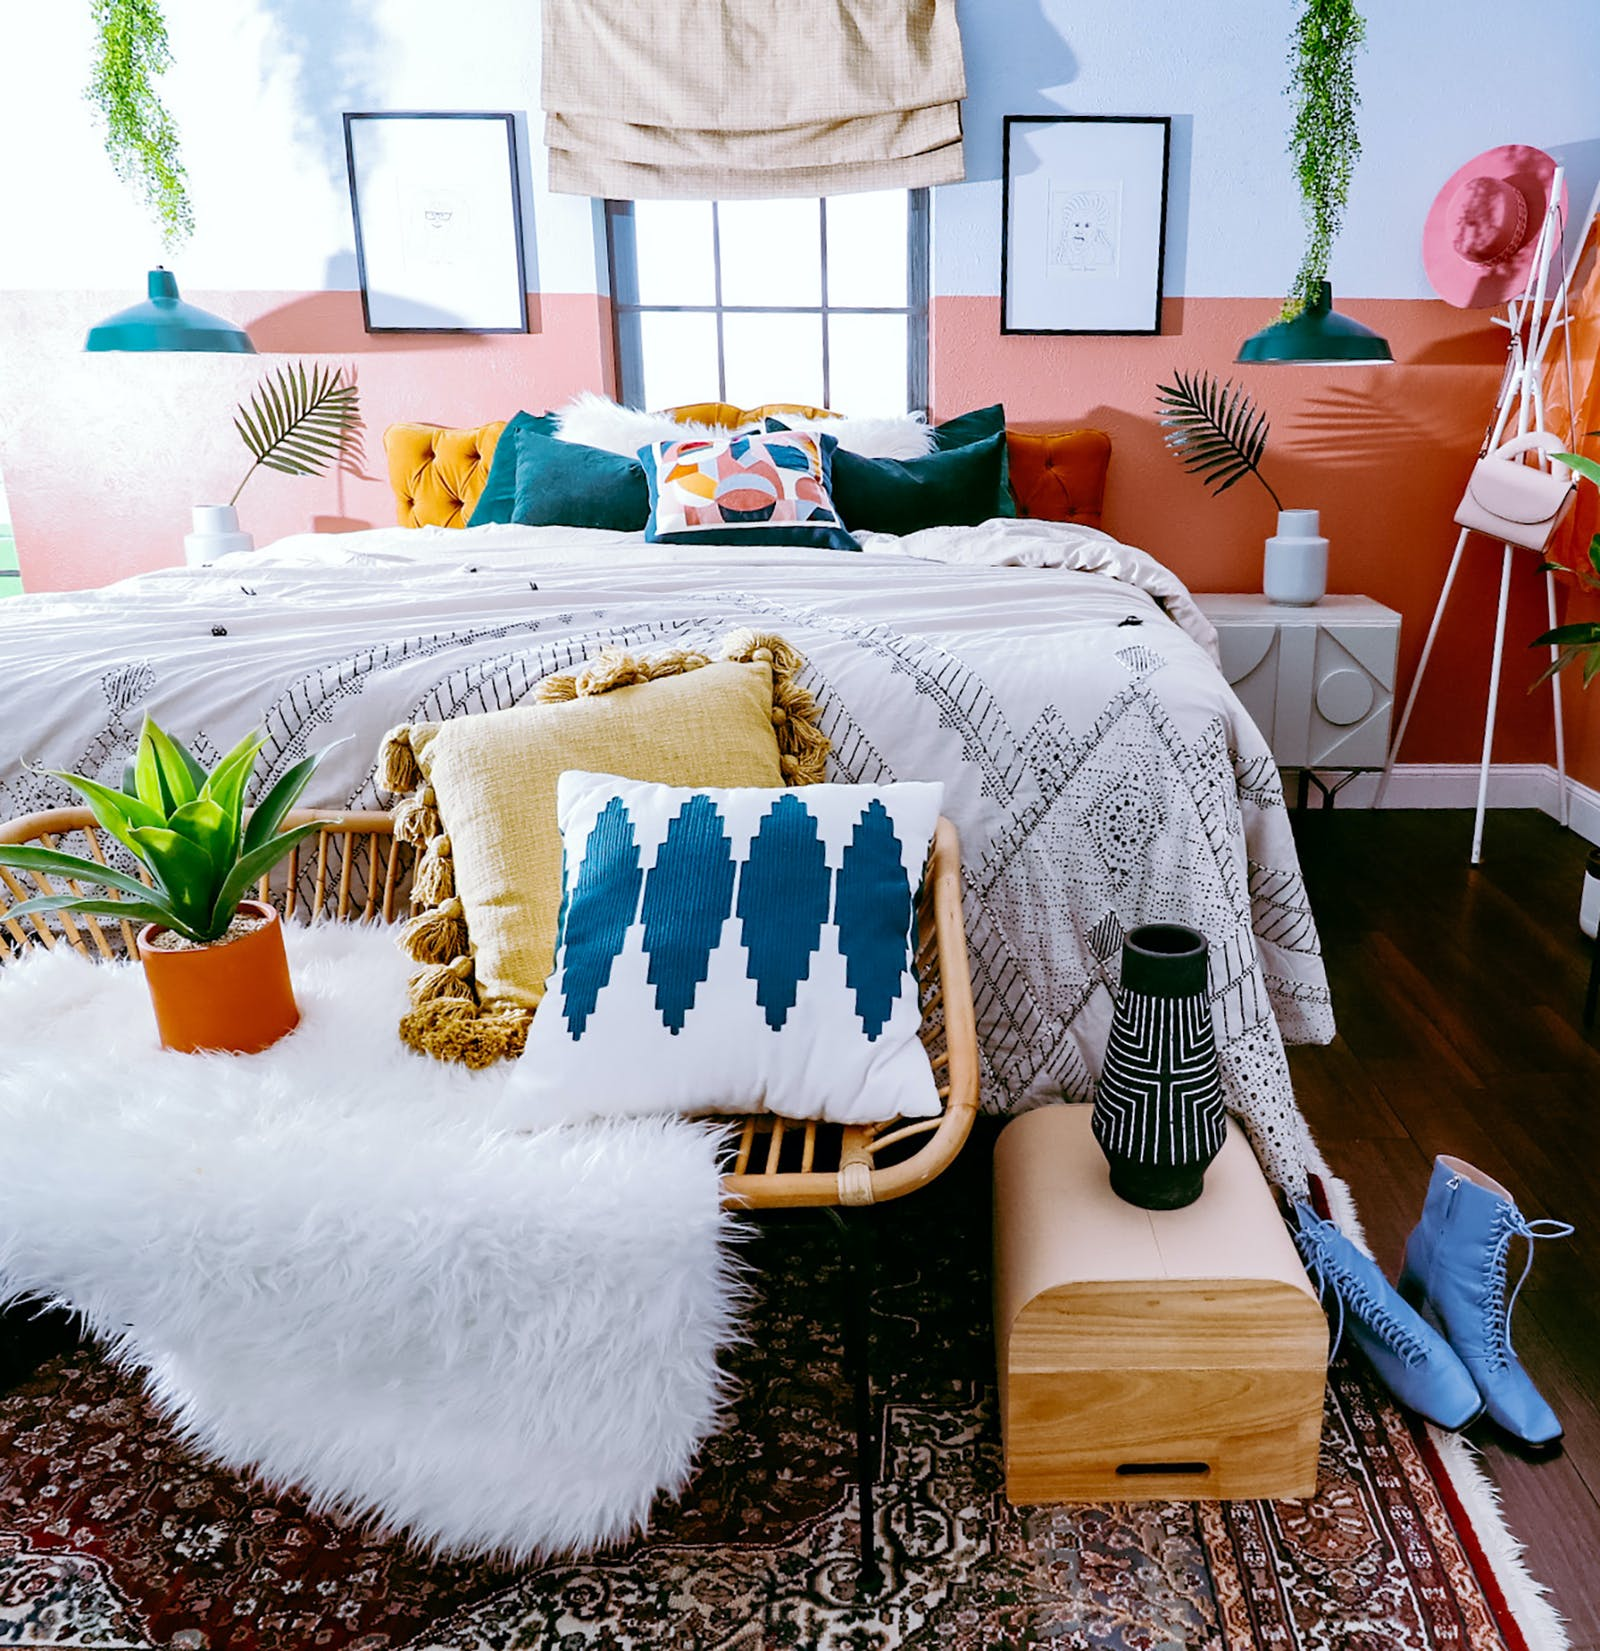 Image of bedroom with colour block wall, colourful pillows and plants